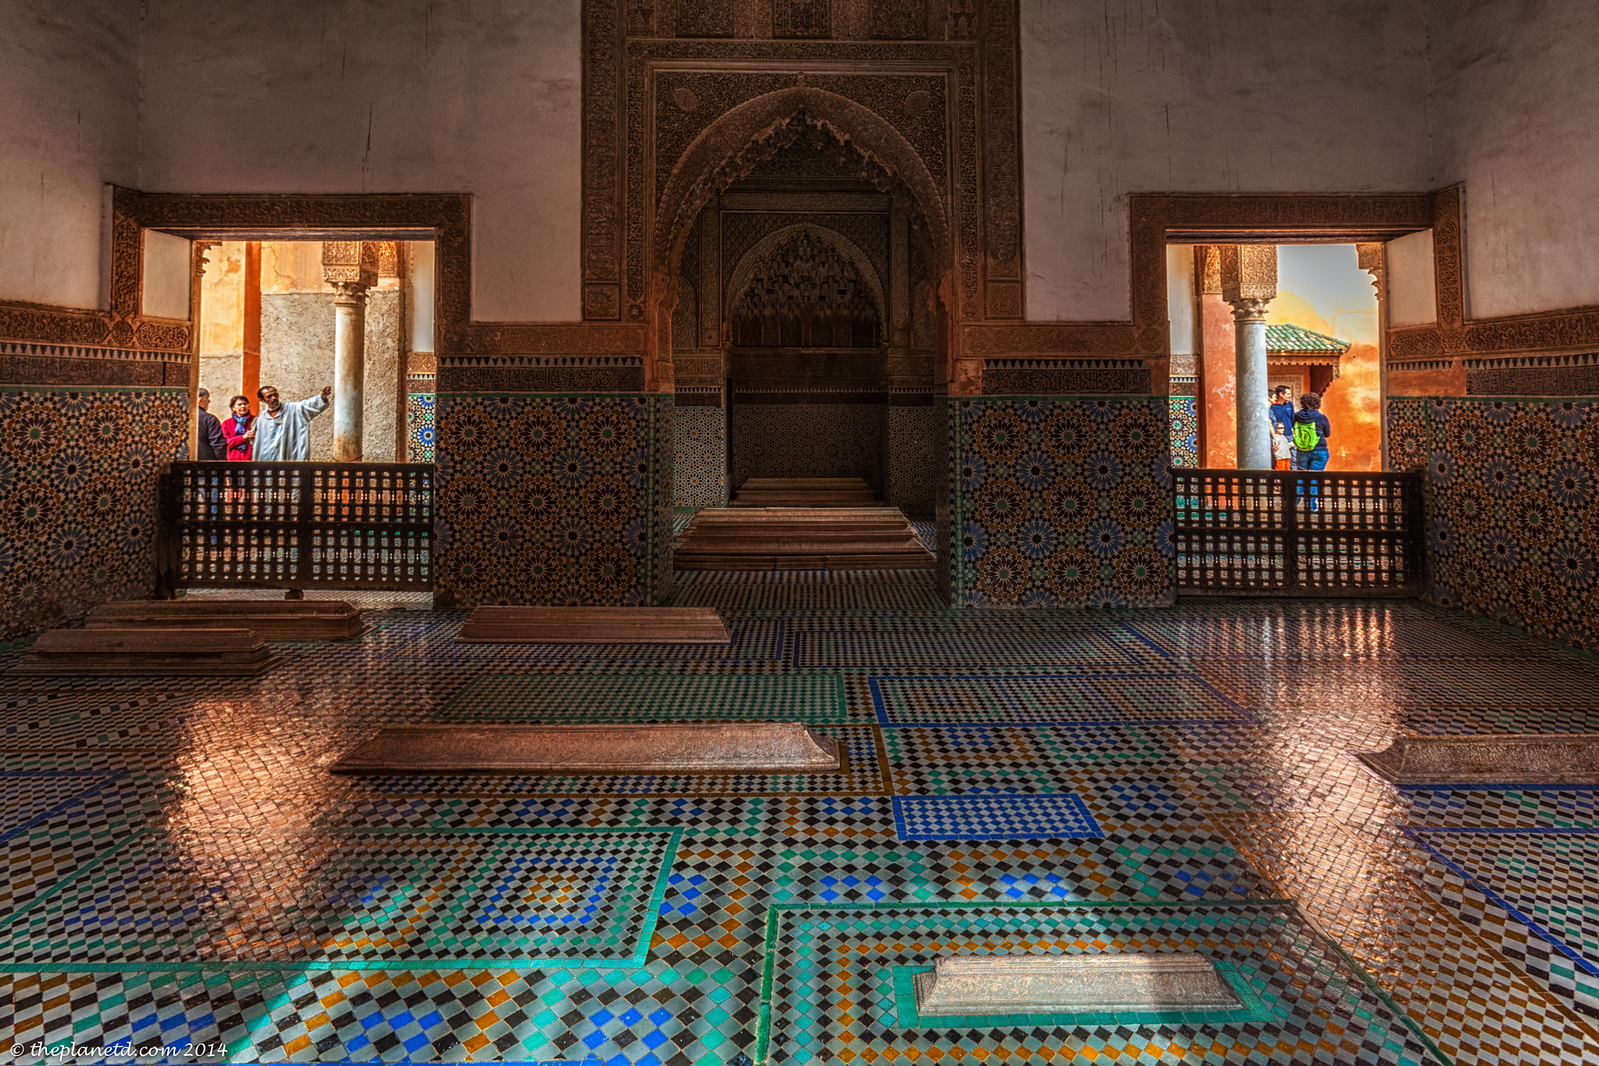 Visit the Saddian Tombs in marrakech